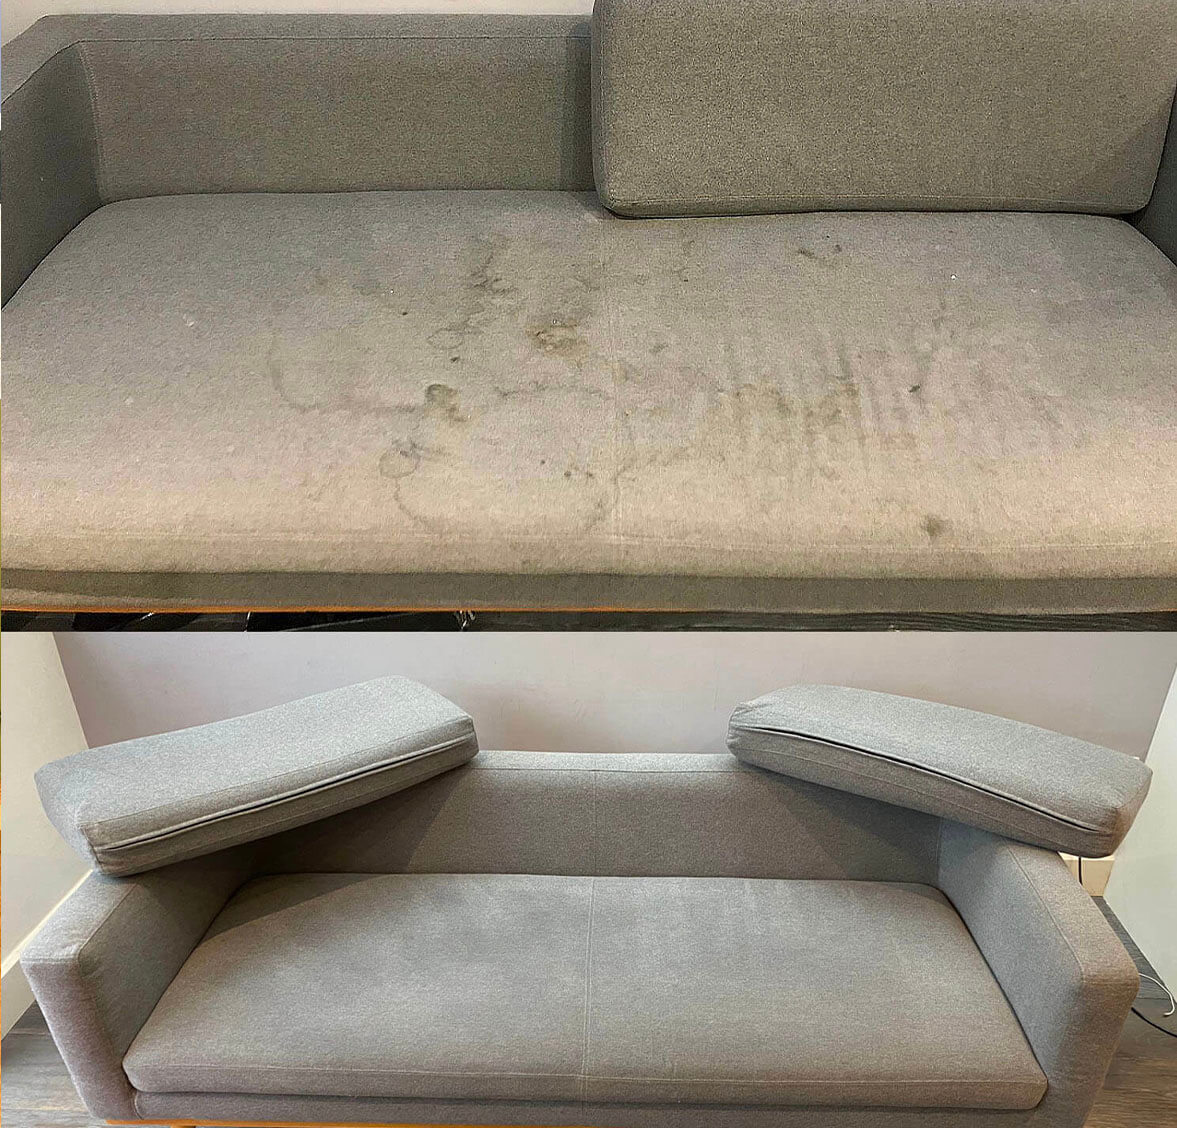 before after upholstery cleaning of sofa by rubix clean in london, uk